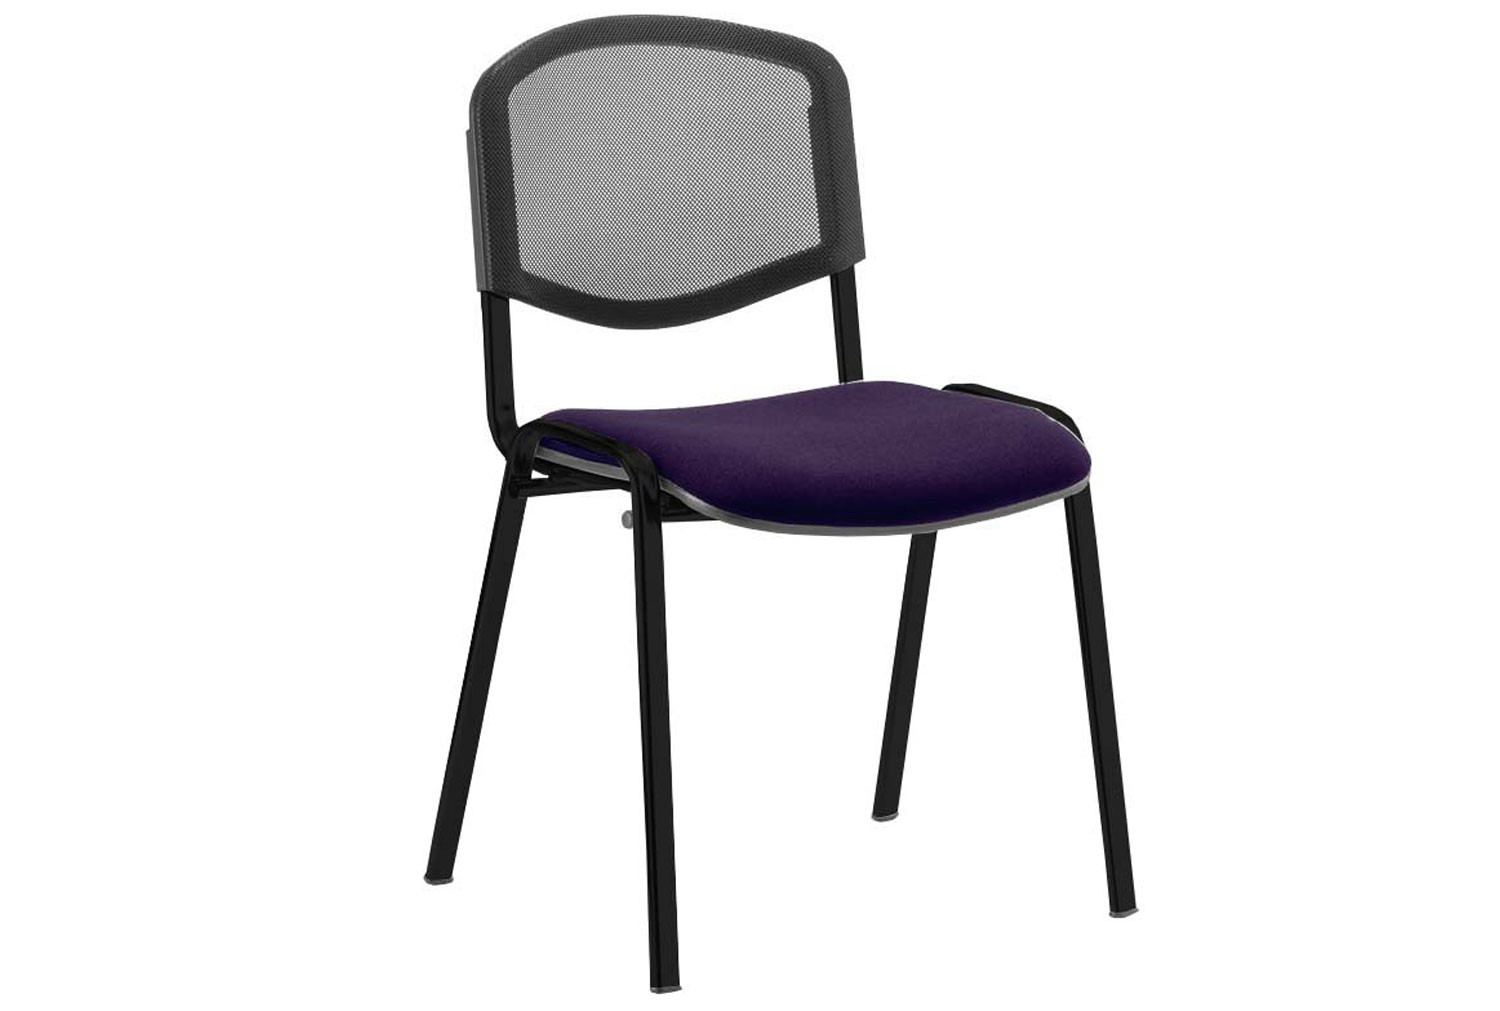 ISO Black Frame Mesh Back Conference Chair (Tansy Purple)